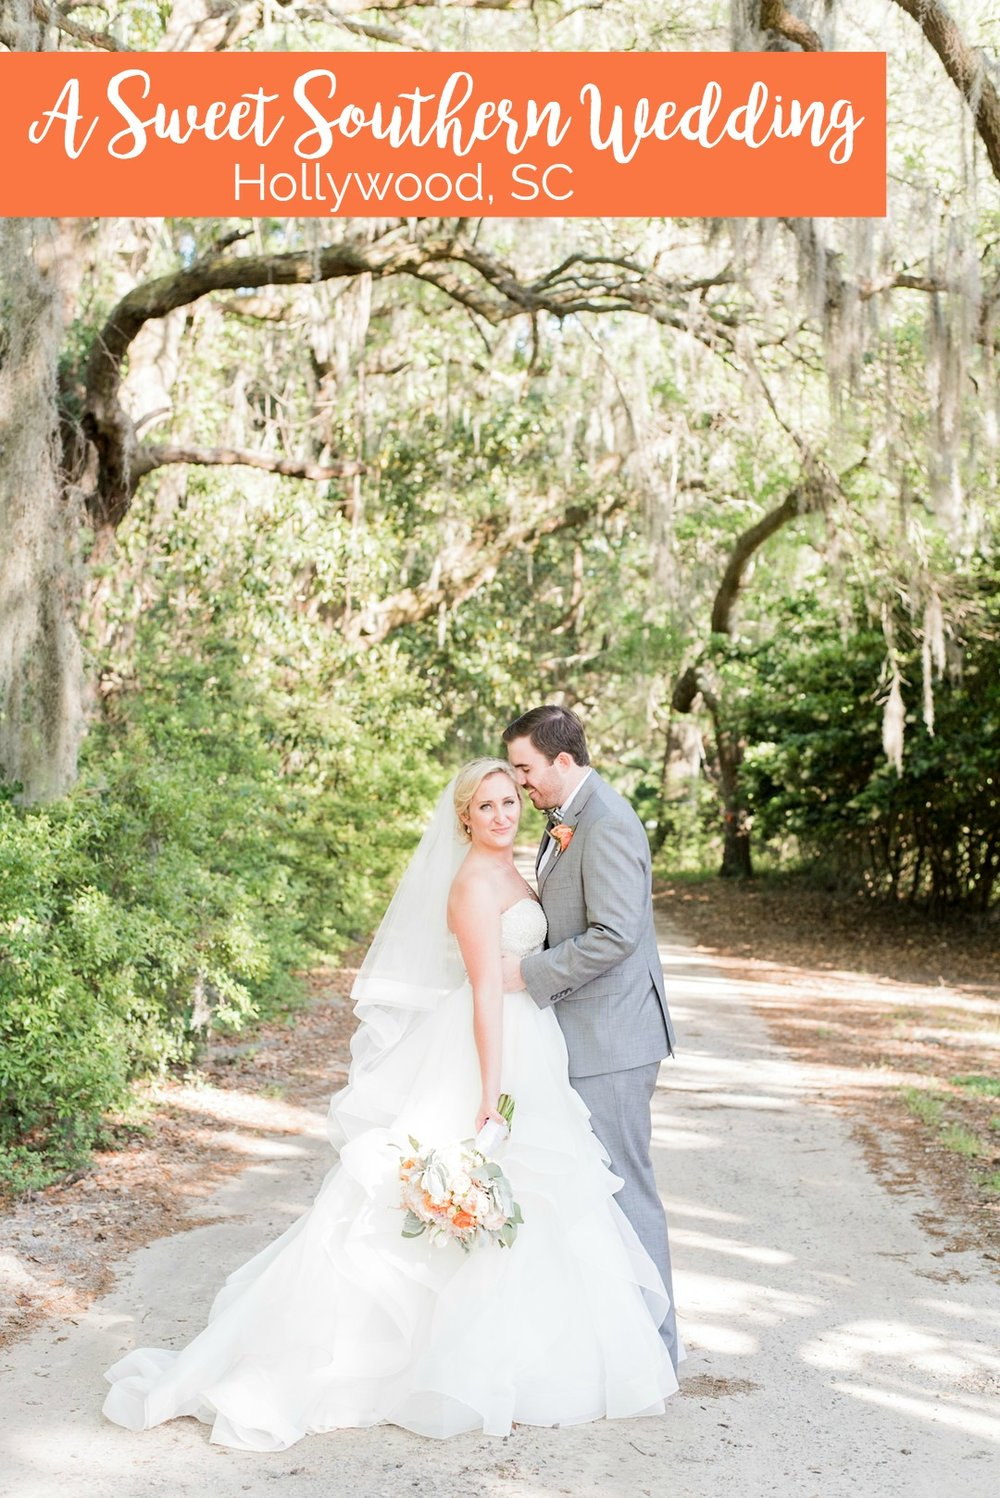 Megan and Luke: A Sunny Day for an Old Wide Awake Plantation Wedding, Hollywood, South Carolina | Palmetto State Weddings | Rebecca hicks Photography | southern wedding inspiration | outdoor wedding | mint and pink wedding